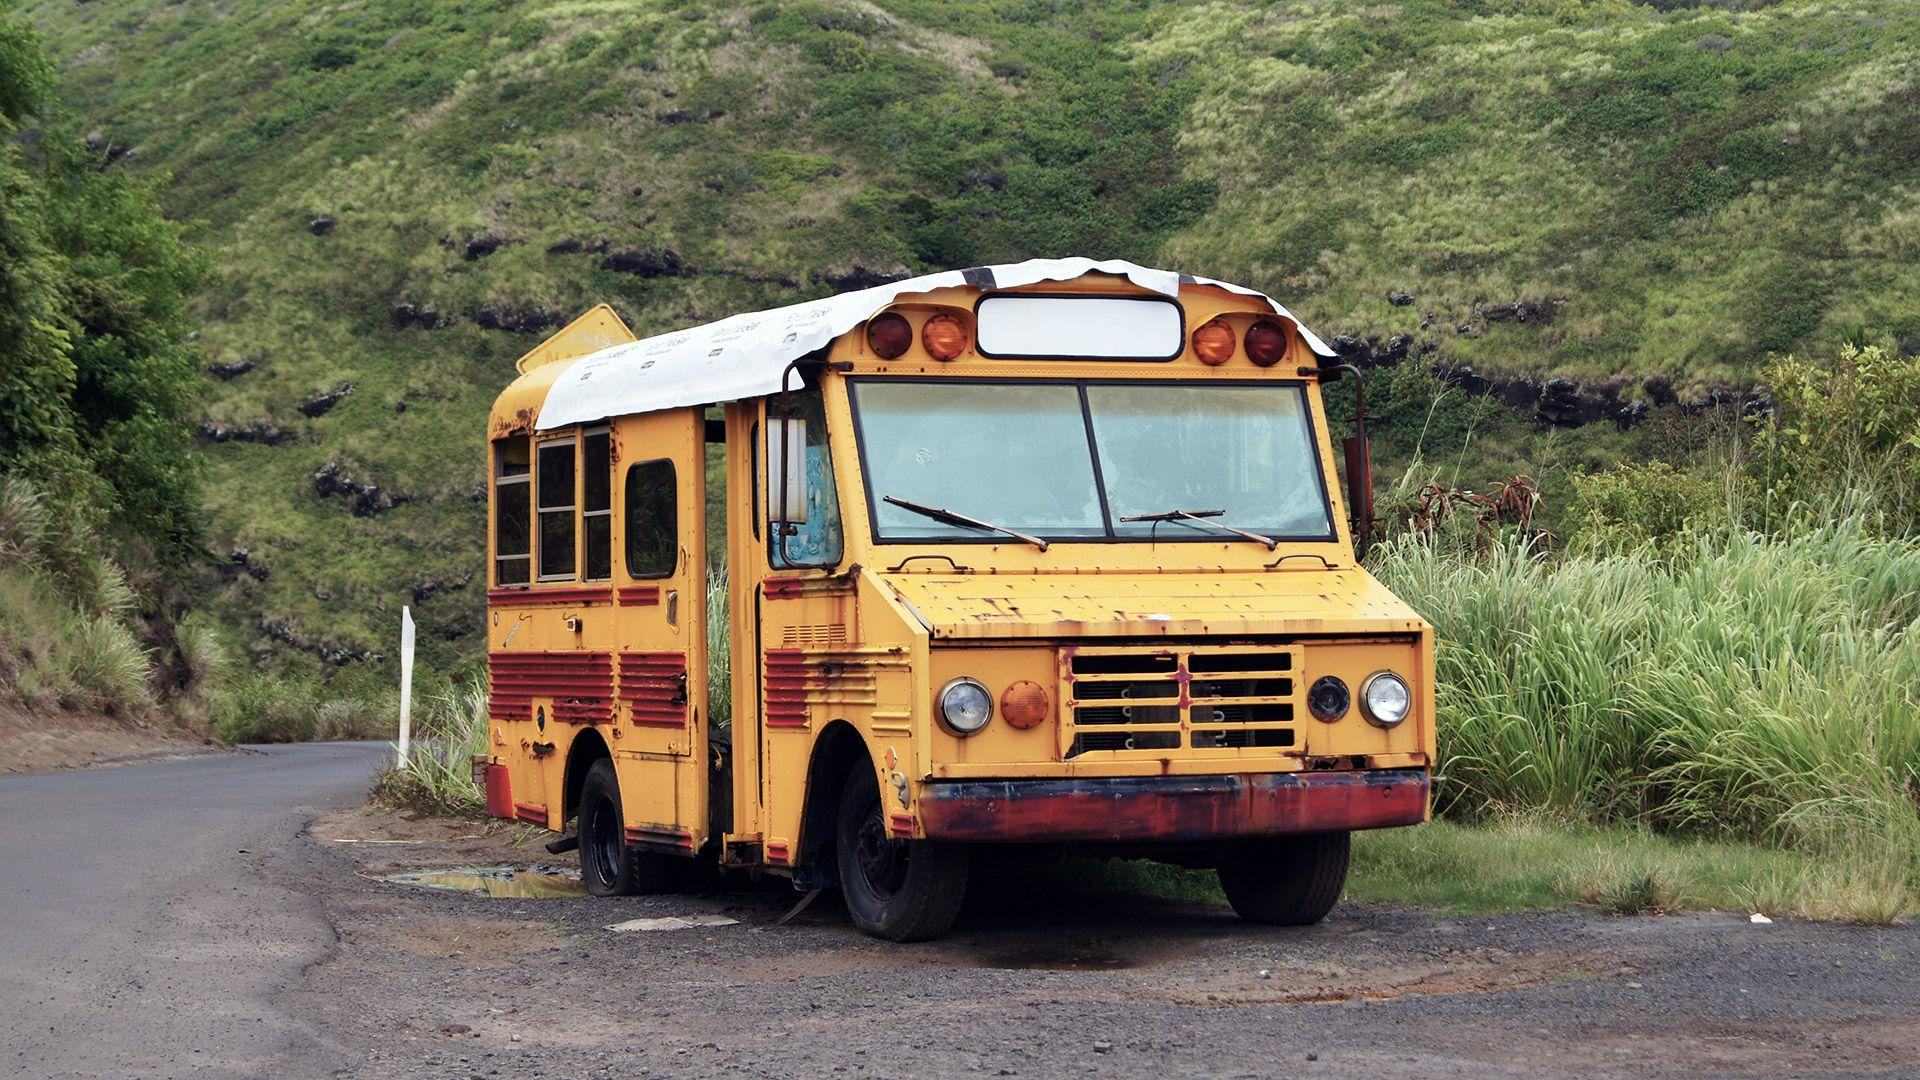 Abandoned Maui School Bus Wallpapers 1920x1080 px